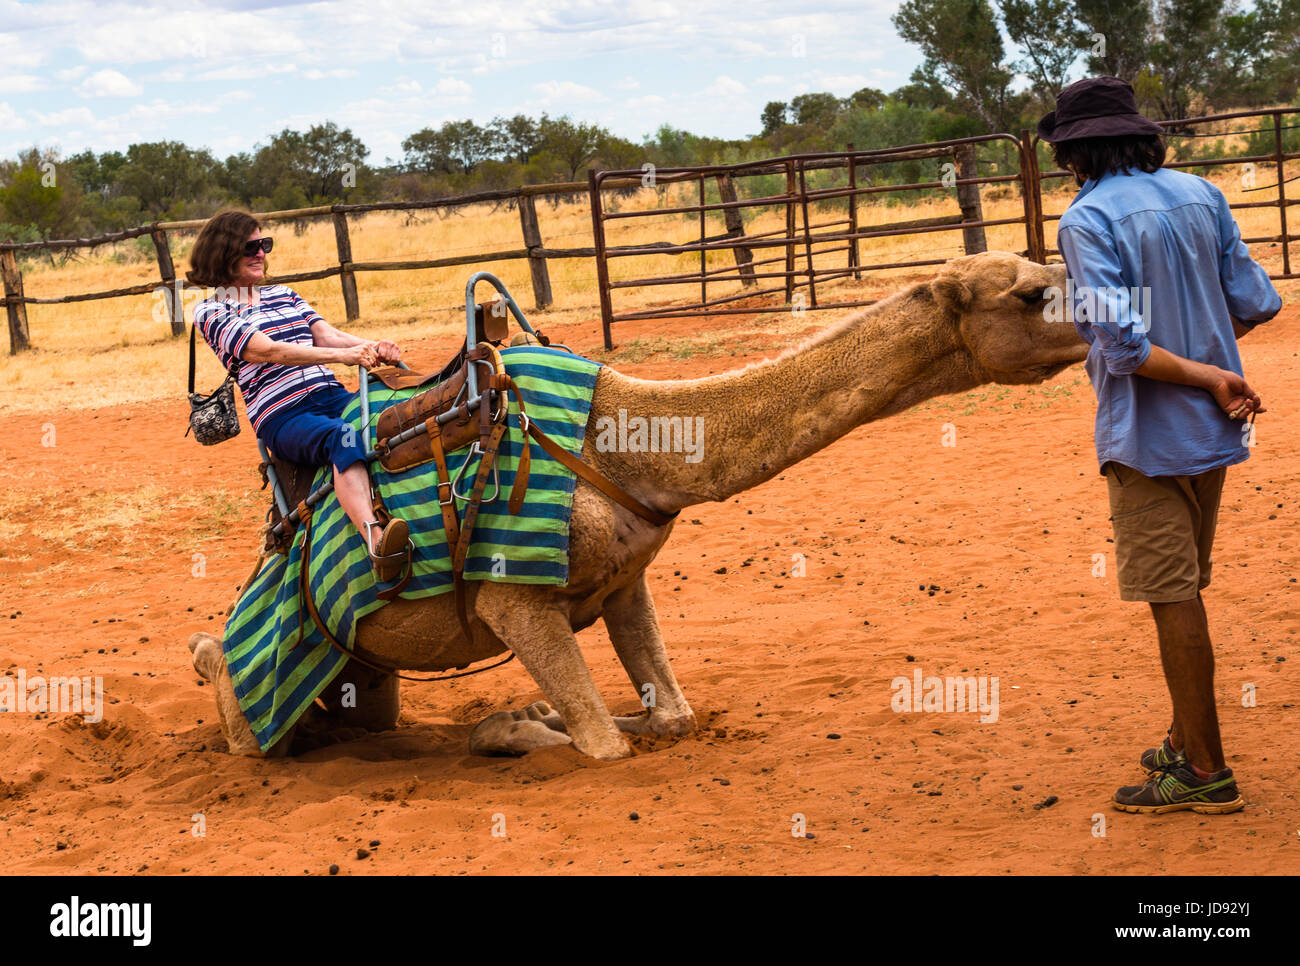 Tourists ride the camels at Outback camel farm. Northern Territory, Australia. - Stock Image